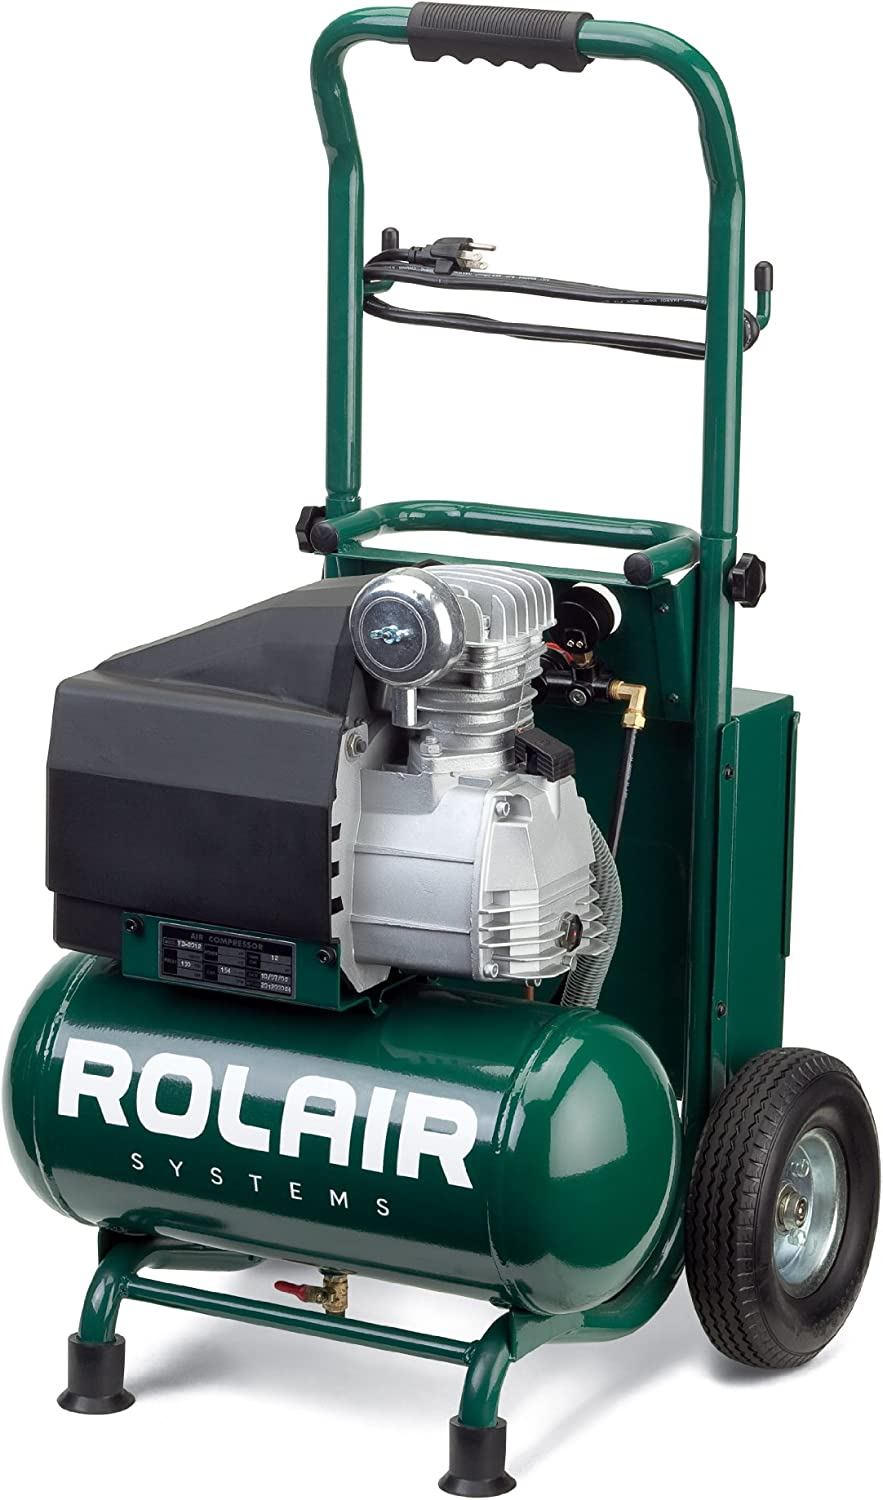 Rolair VT20TB 2 HP Wheeled Compressor with Overload Protection and Manual Reset